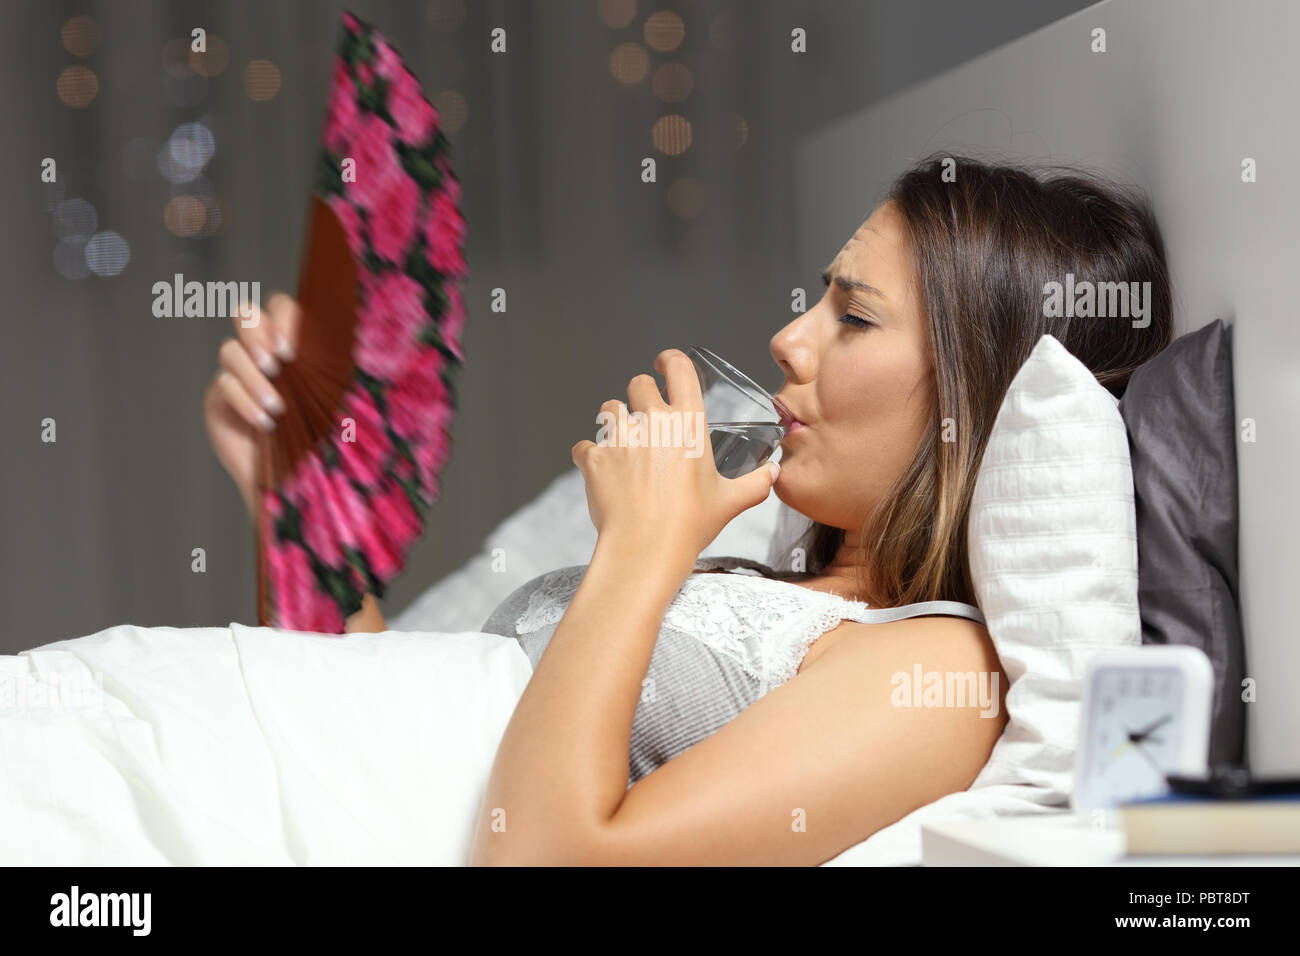 Girl suffering a heat wave drinking water and fanning on a bed in the night at home Stock Photo